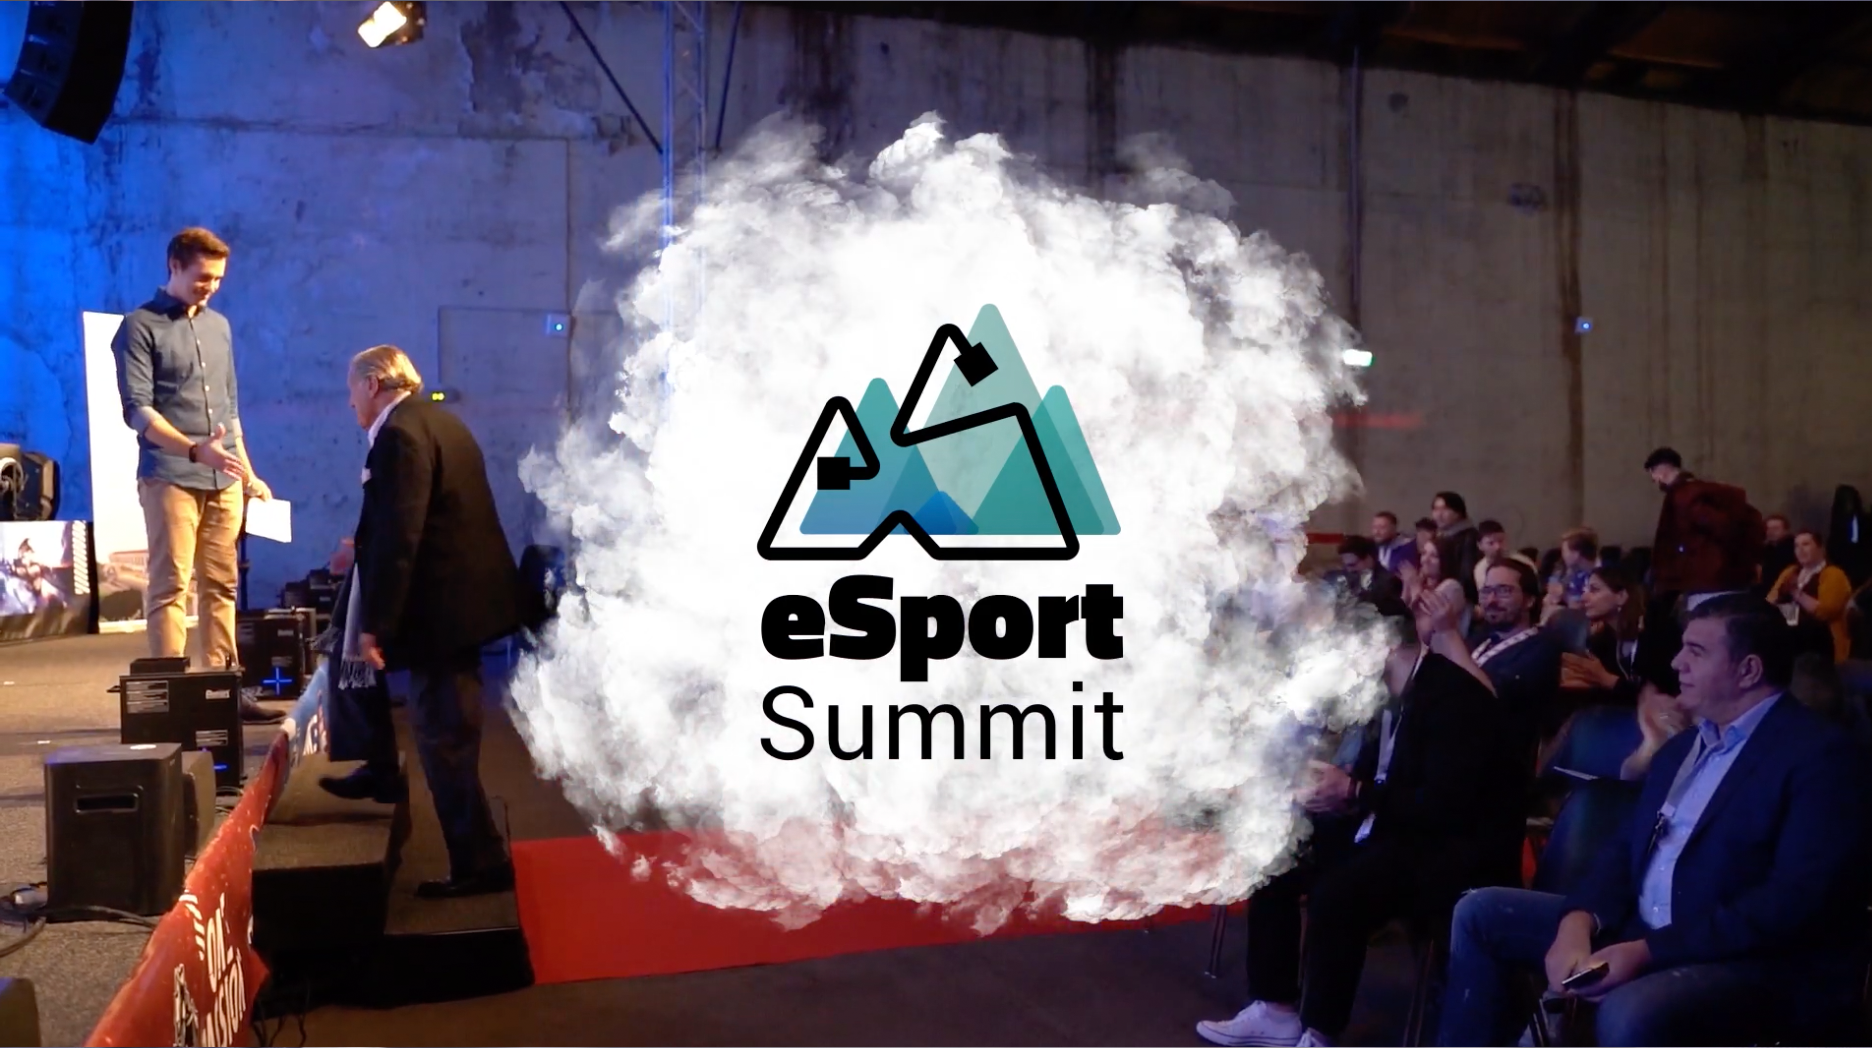 eSport Summit 2019 Highlights